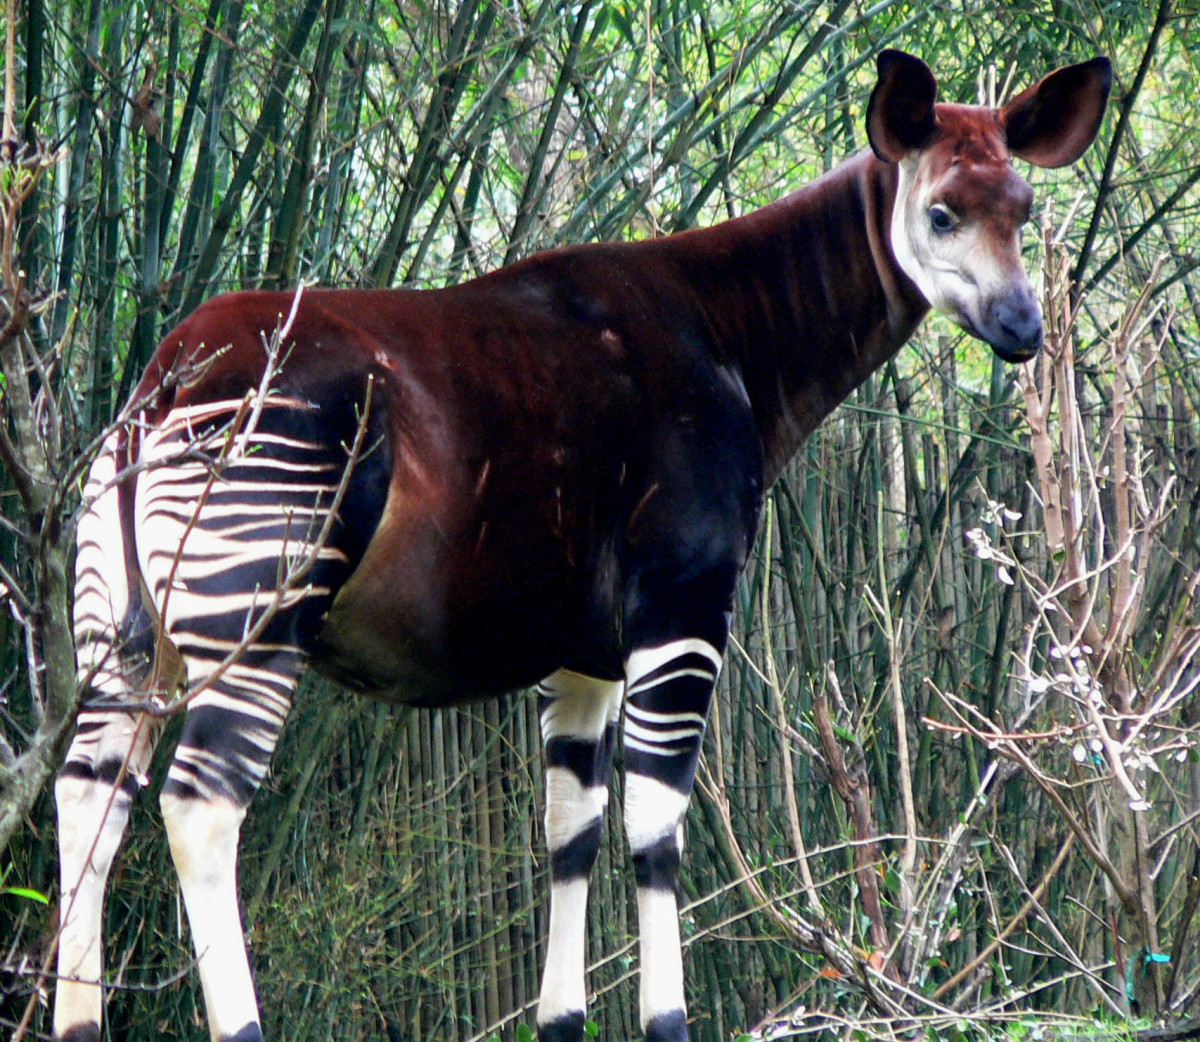 An Okapi. Taken at Disney's Animal Kingdom by Raul654 on January 16, 2005